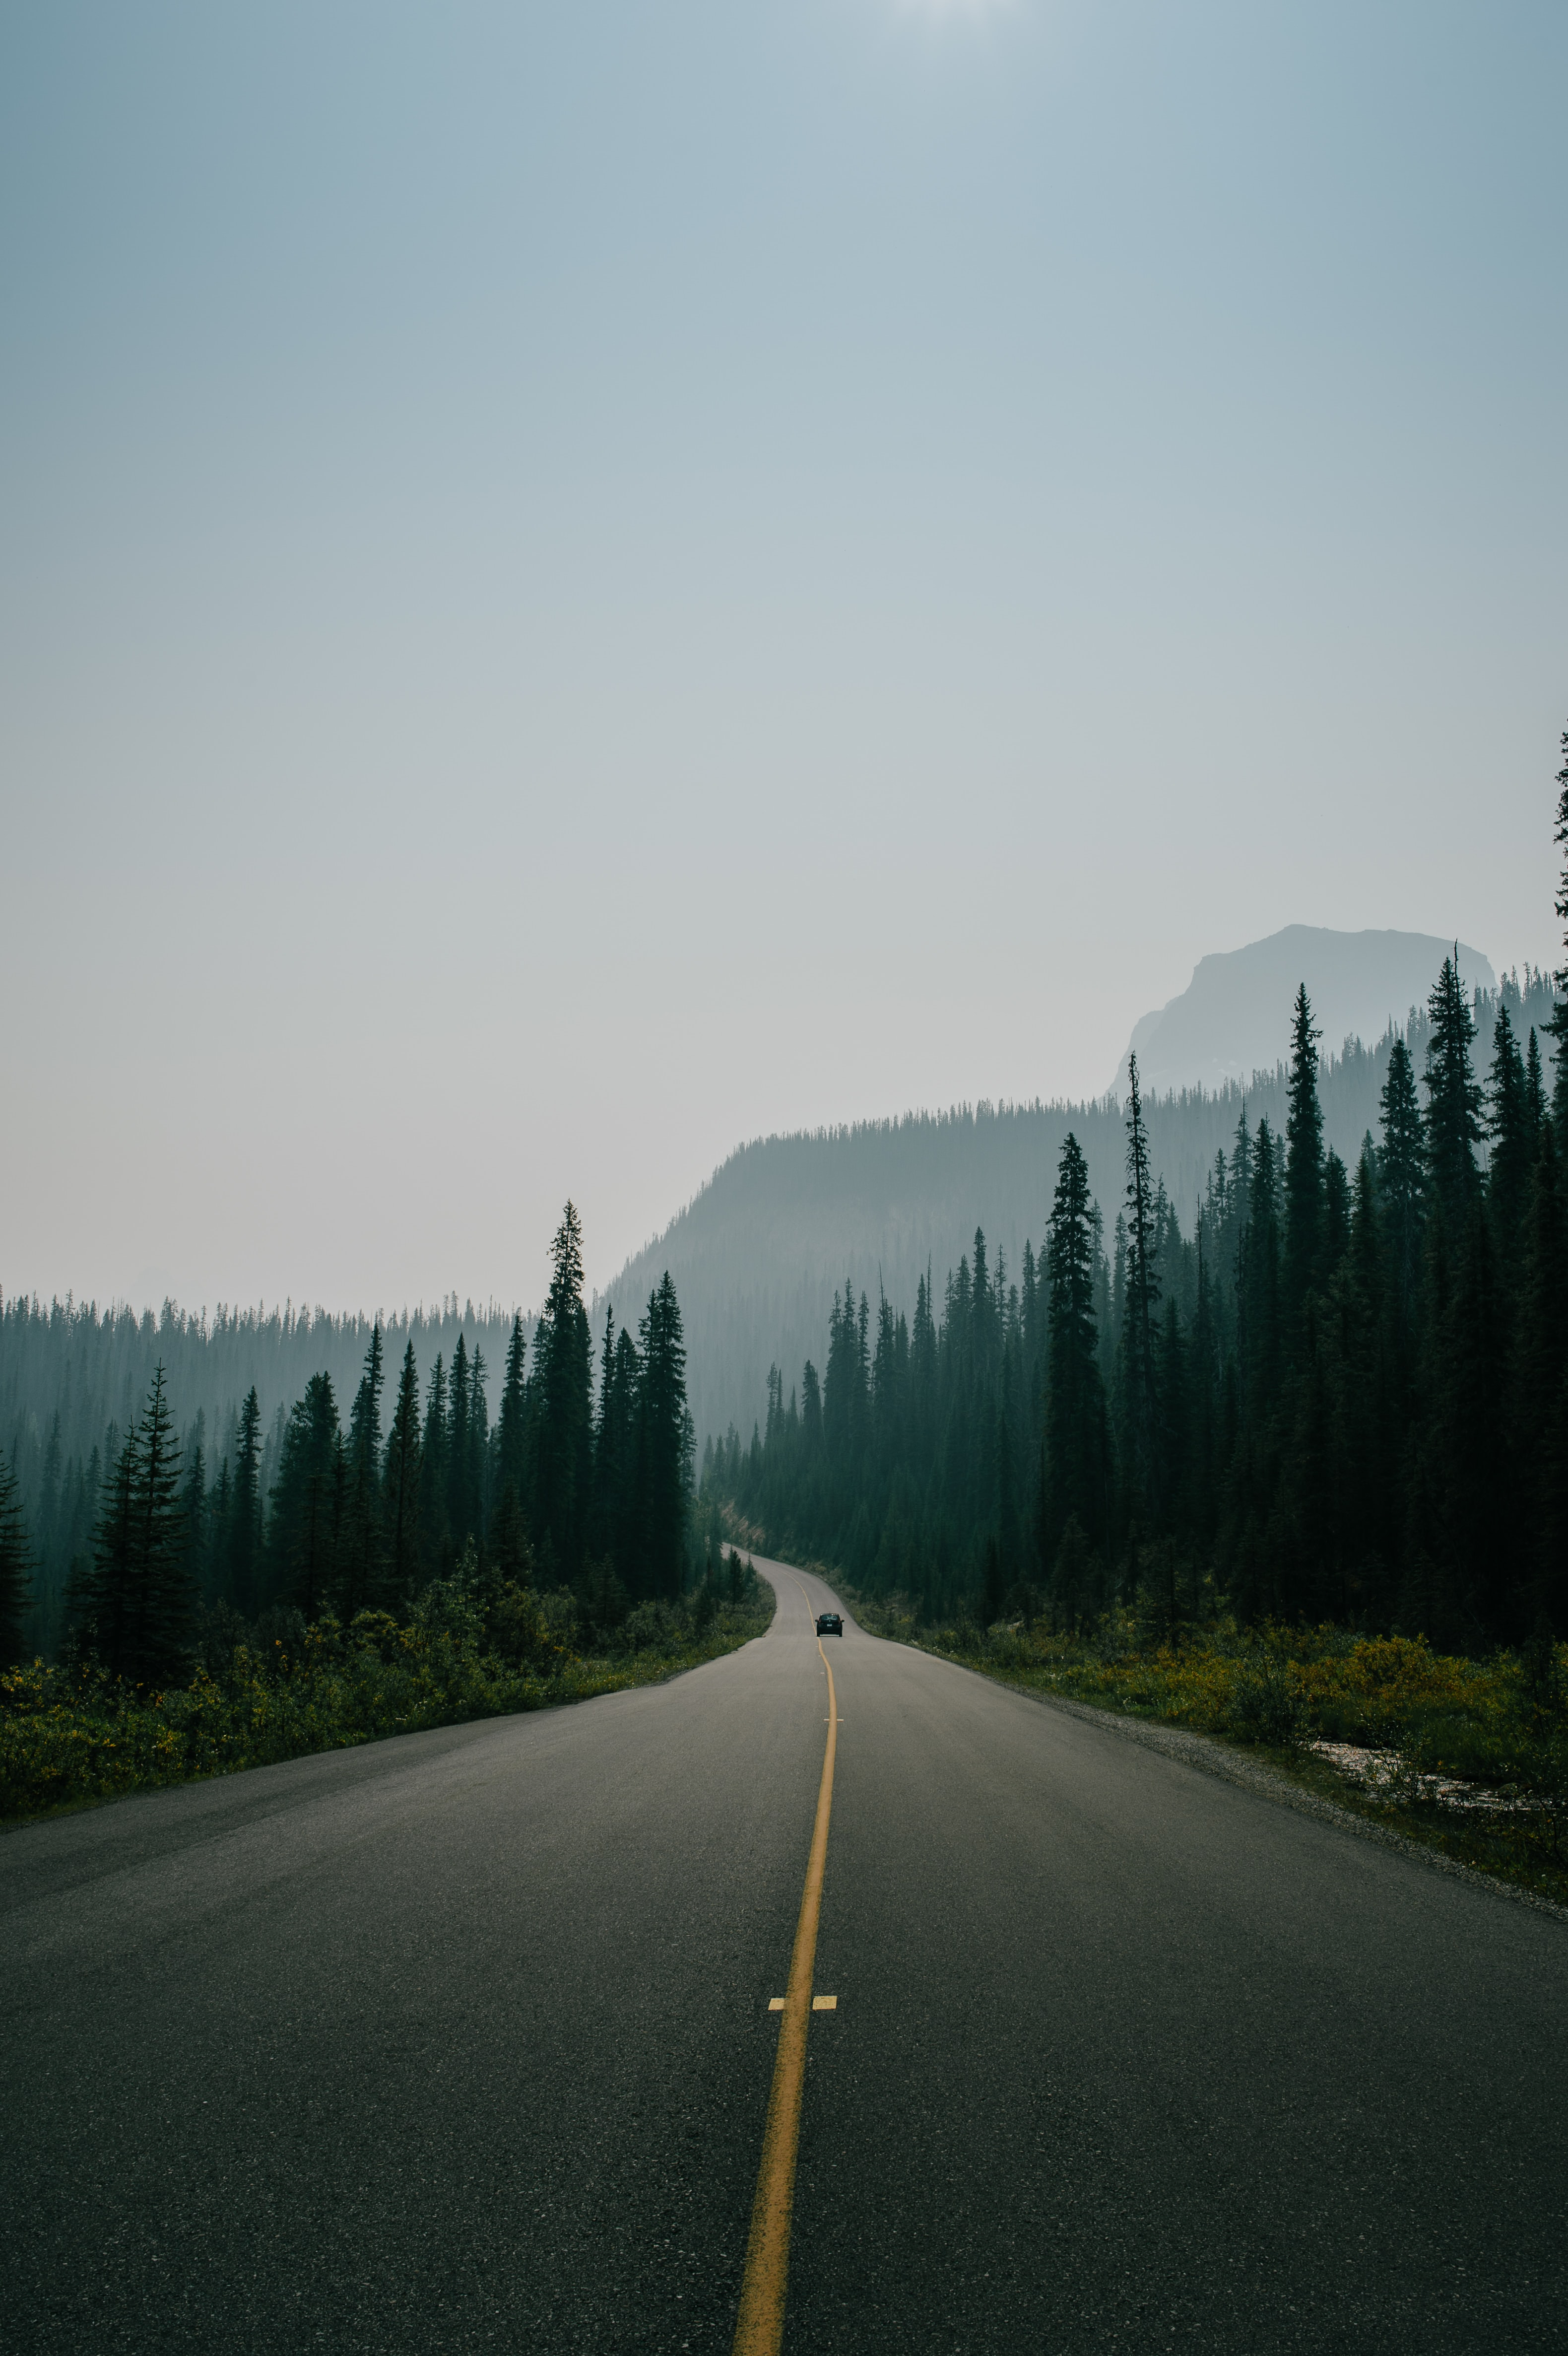 asphalt road surrounded by trees under skies